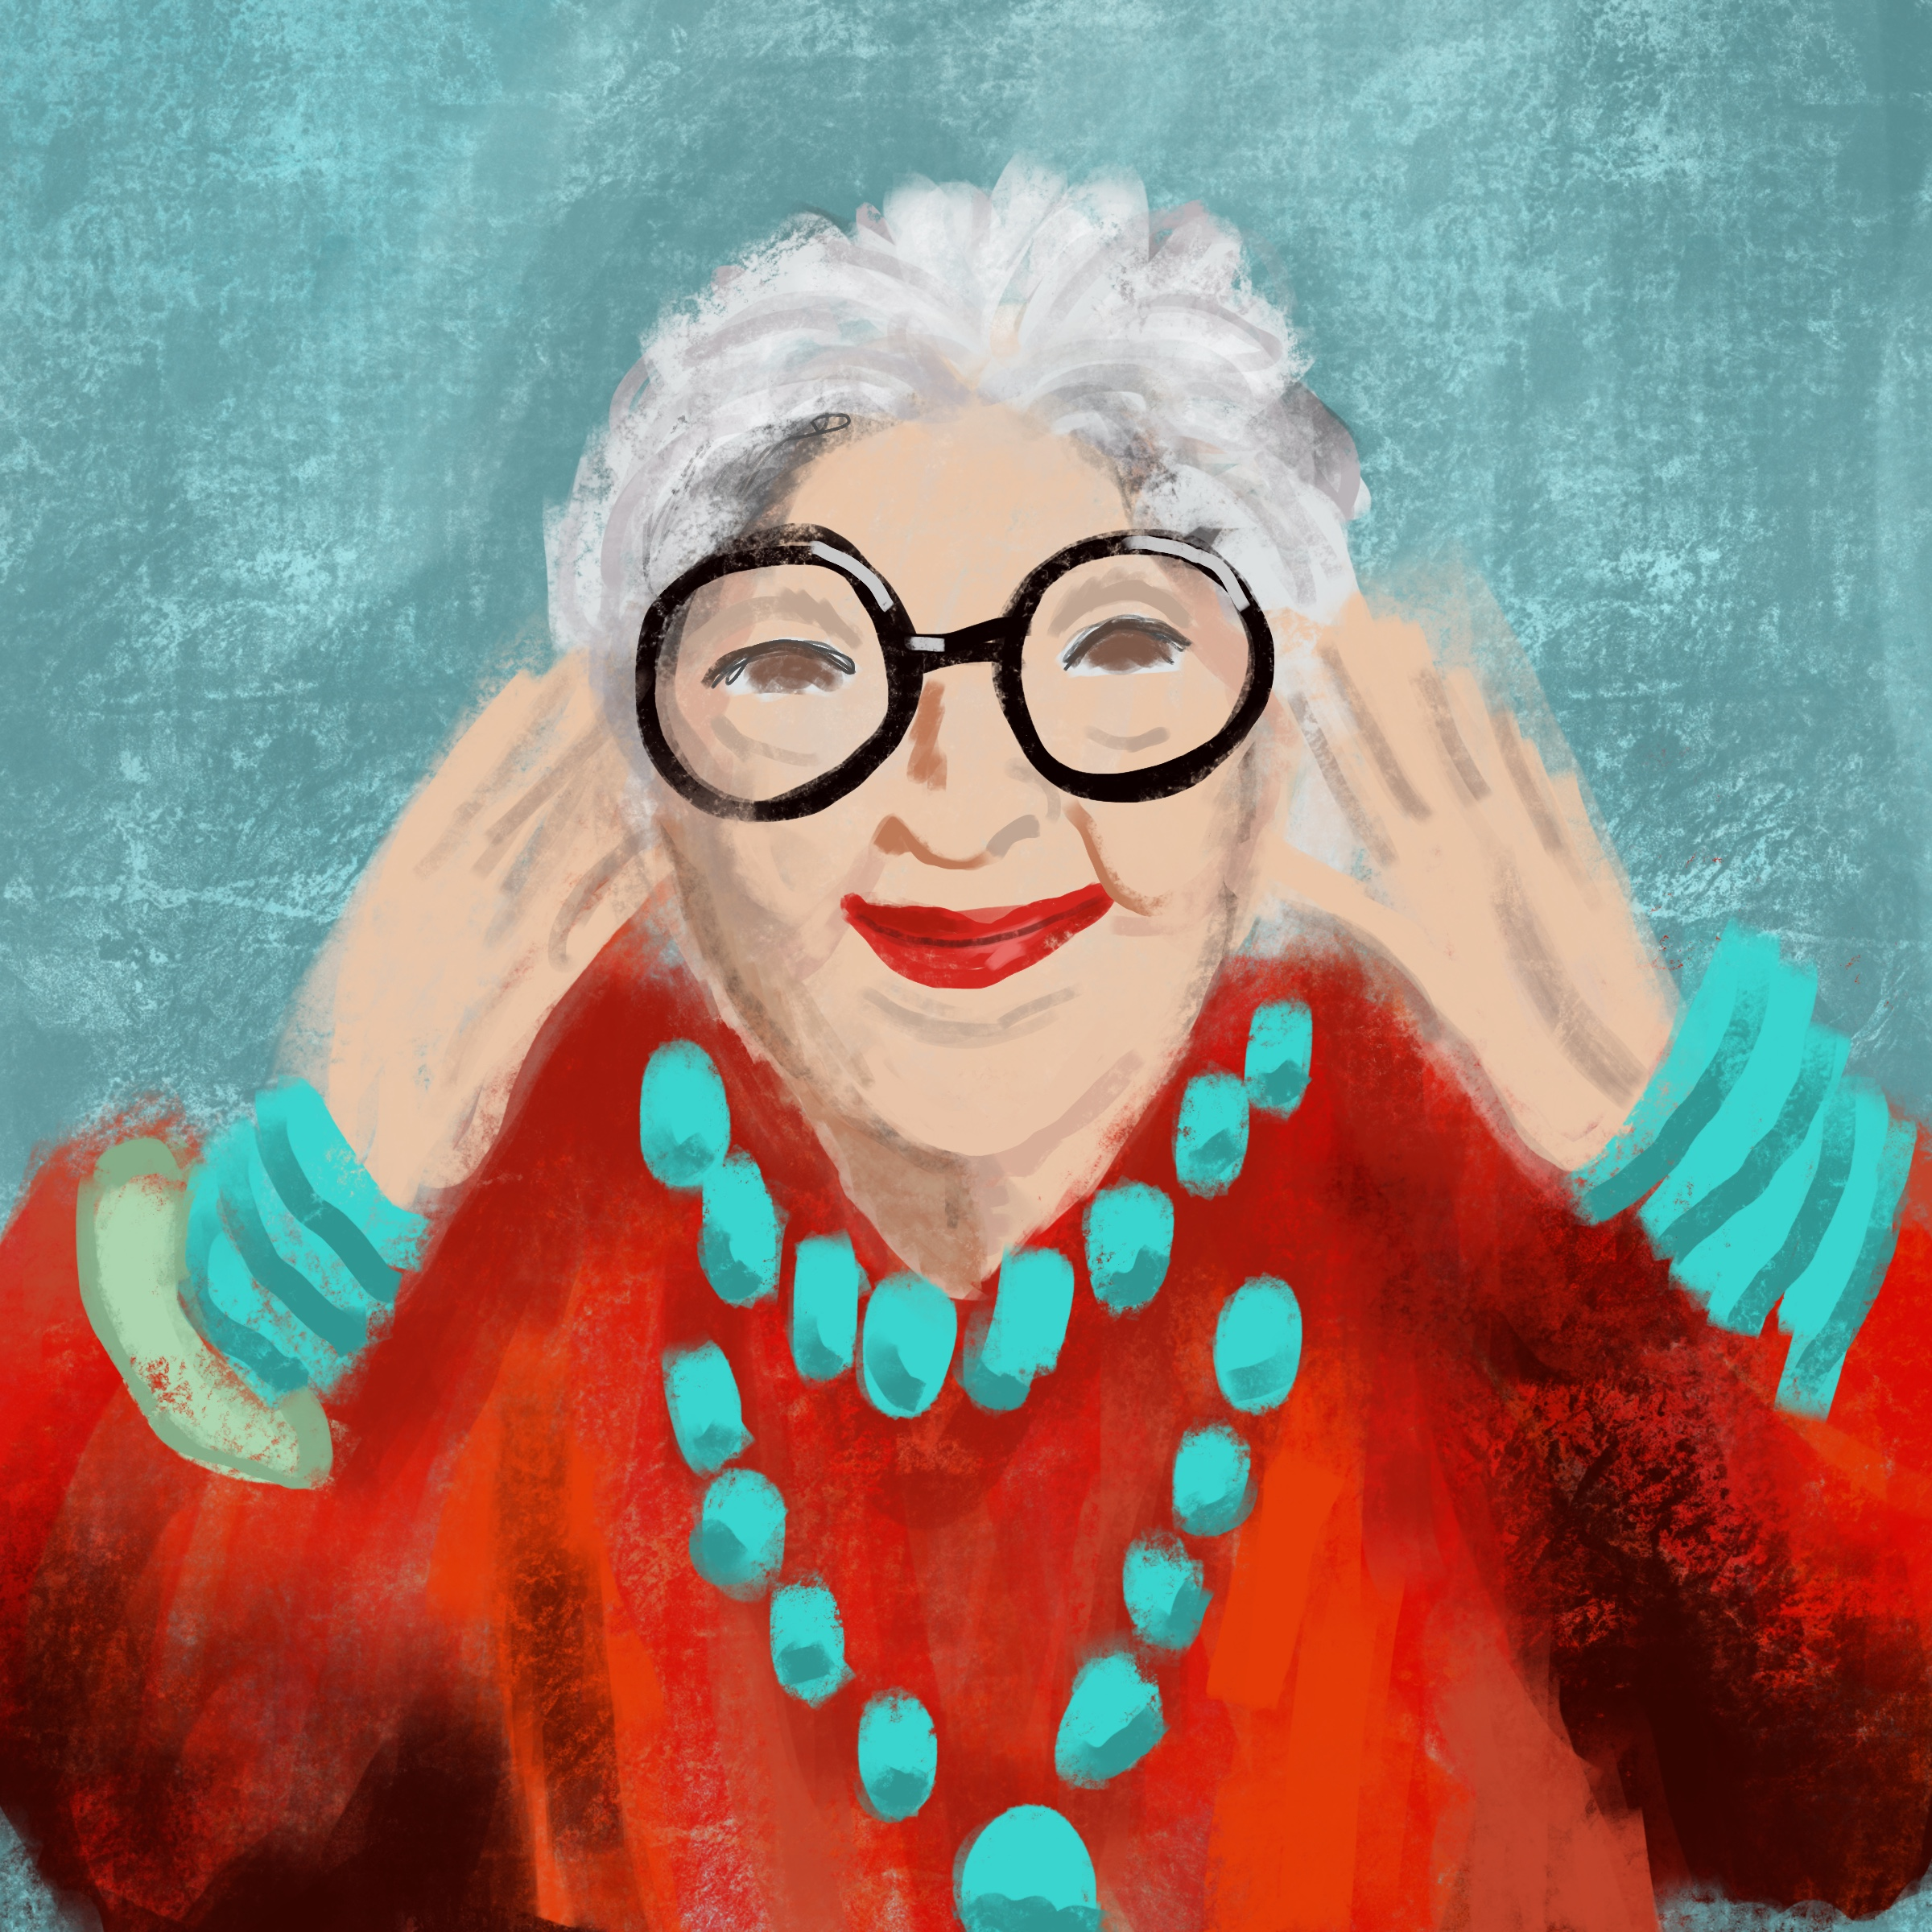 Digital painting of Iris Apfel by Tzaddi Gordon